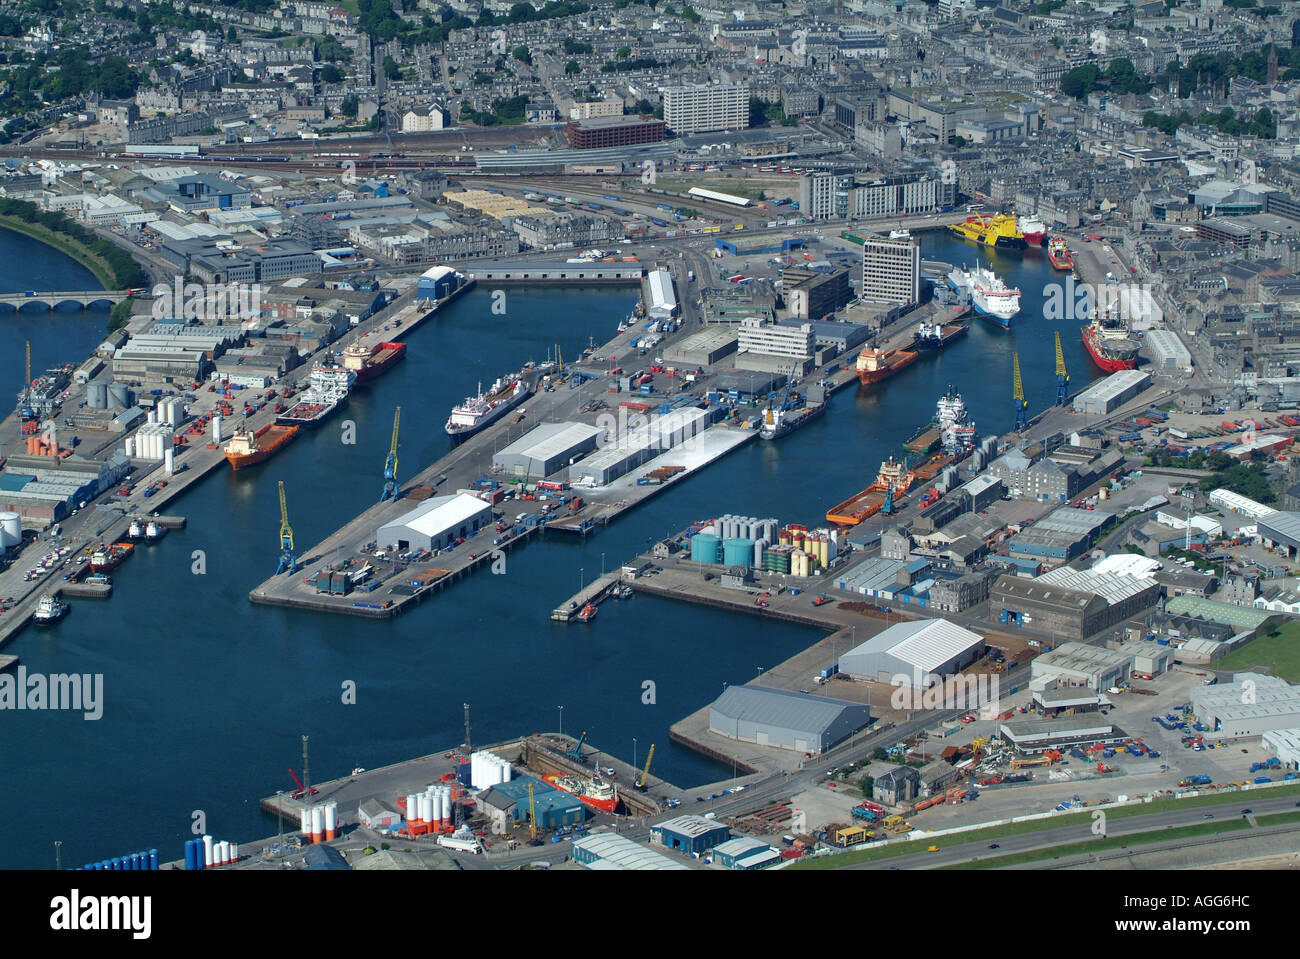 Aberdeen Harbour from the Air, Scotland, Summer 2006 - Stock Image